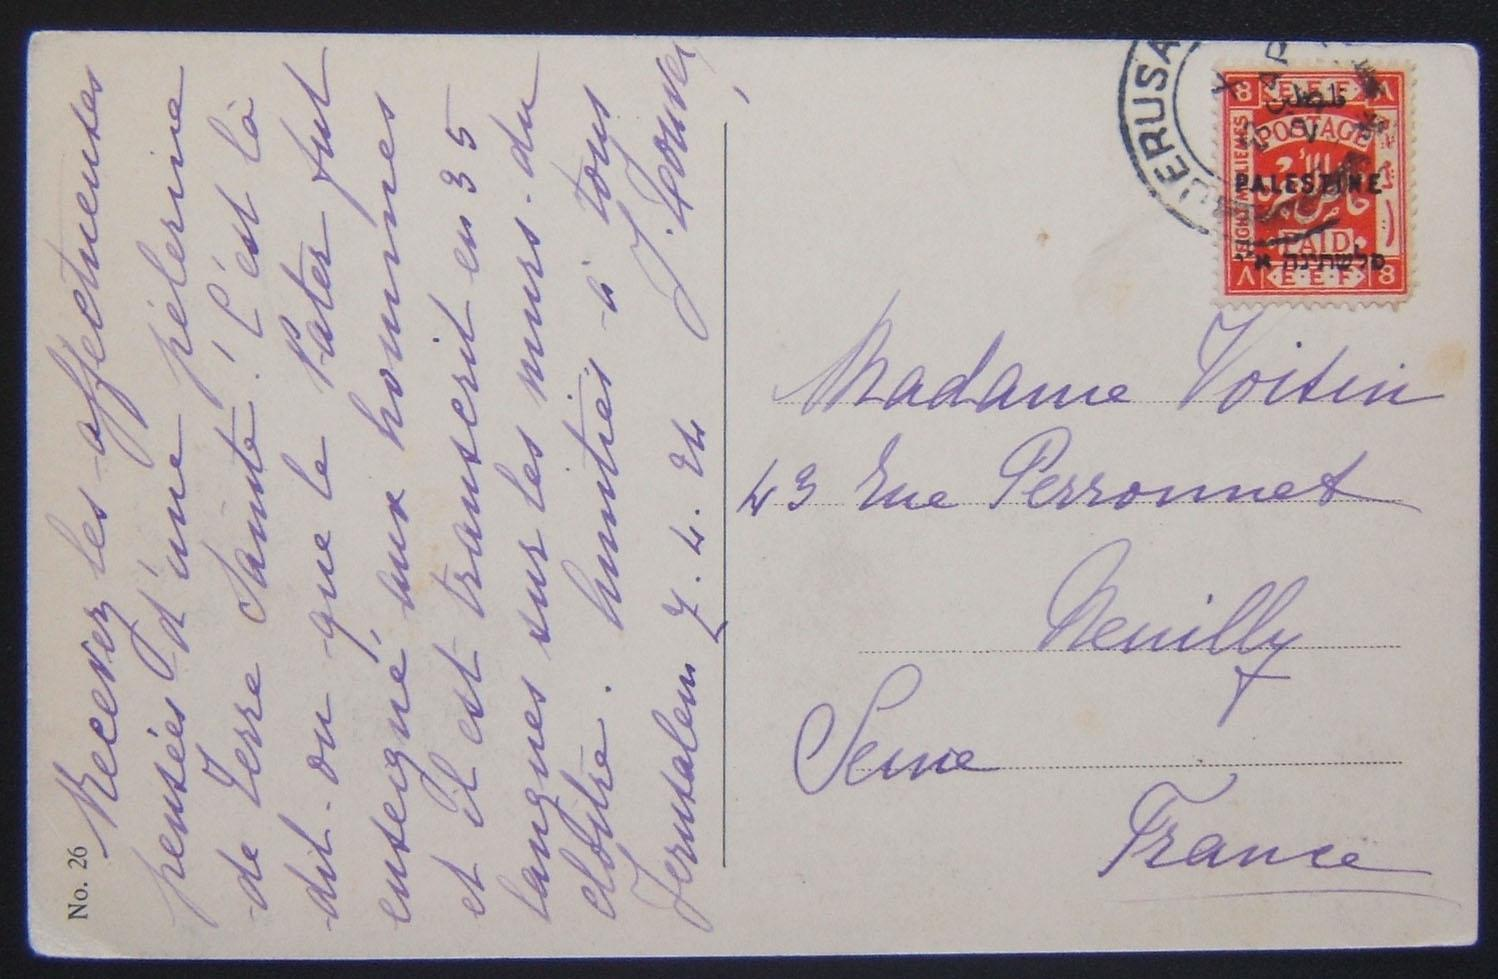 Postal curiosity: Picture postcard Church of Peter ex Jerusalem to Neuilly, France, dated 7.4.24 but postmarked 8 AP 23(??) and franked 8m (Ba 78) - the correct overseas surface ra